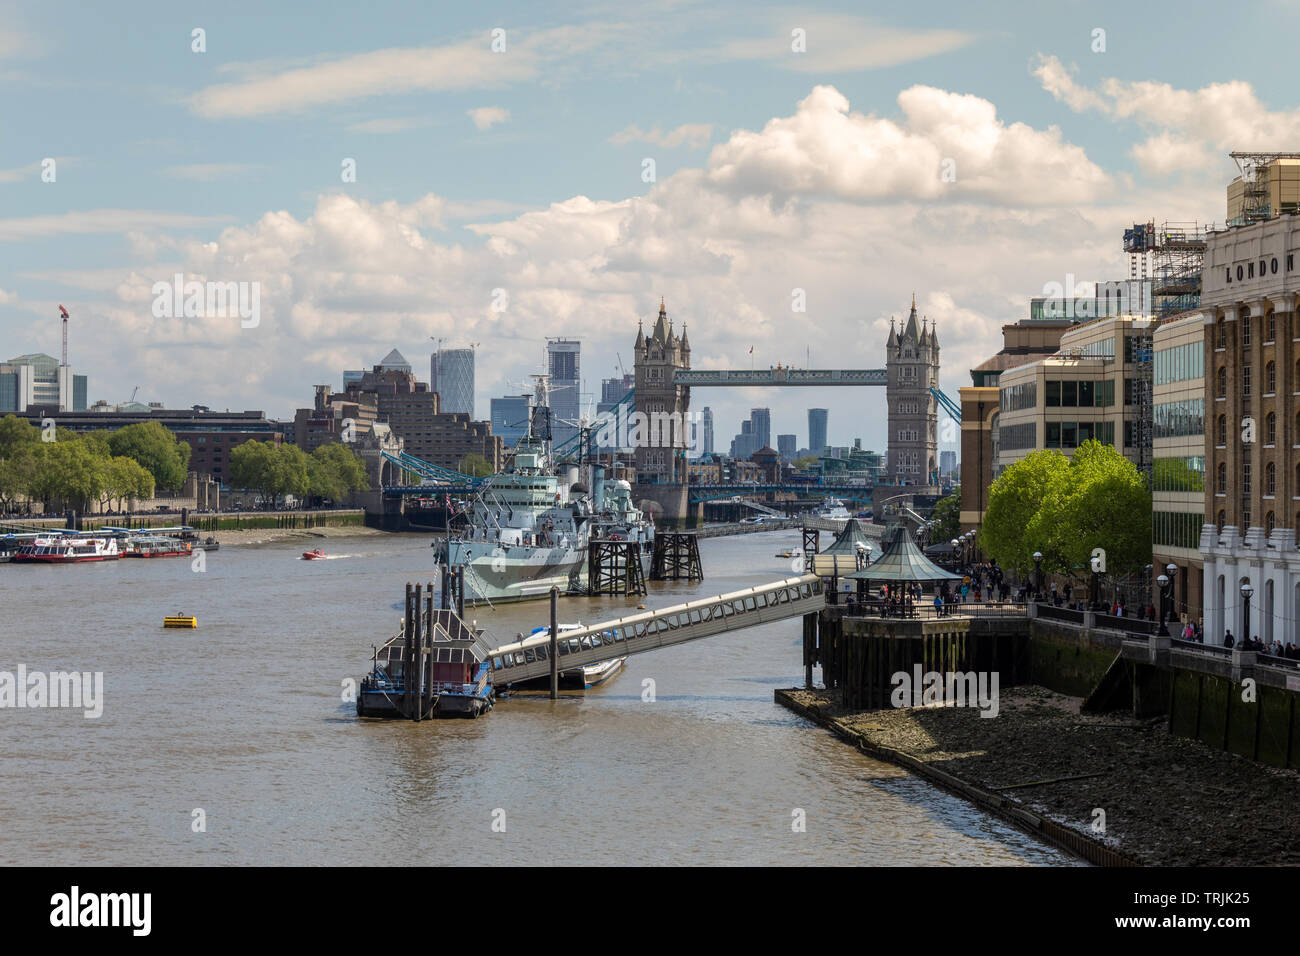 Tower Bridge, London, Daytime - Stock Image